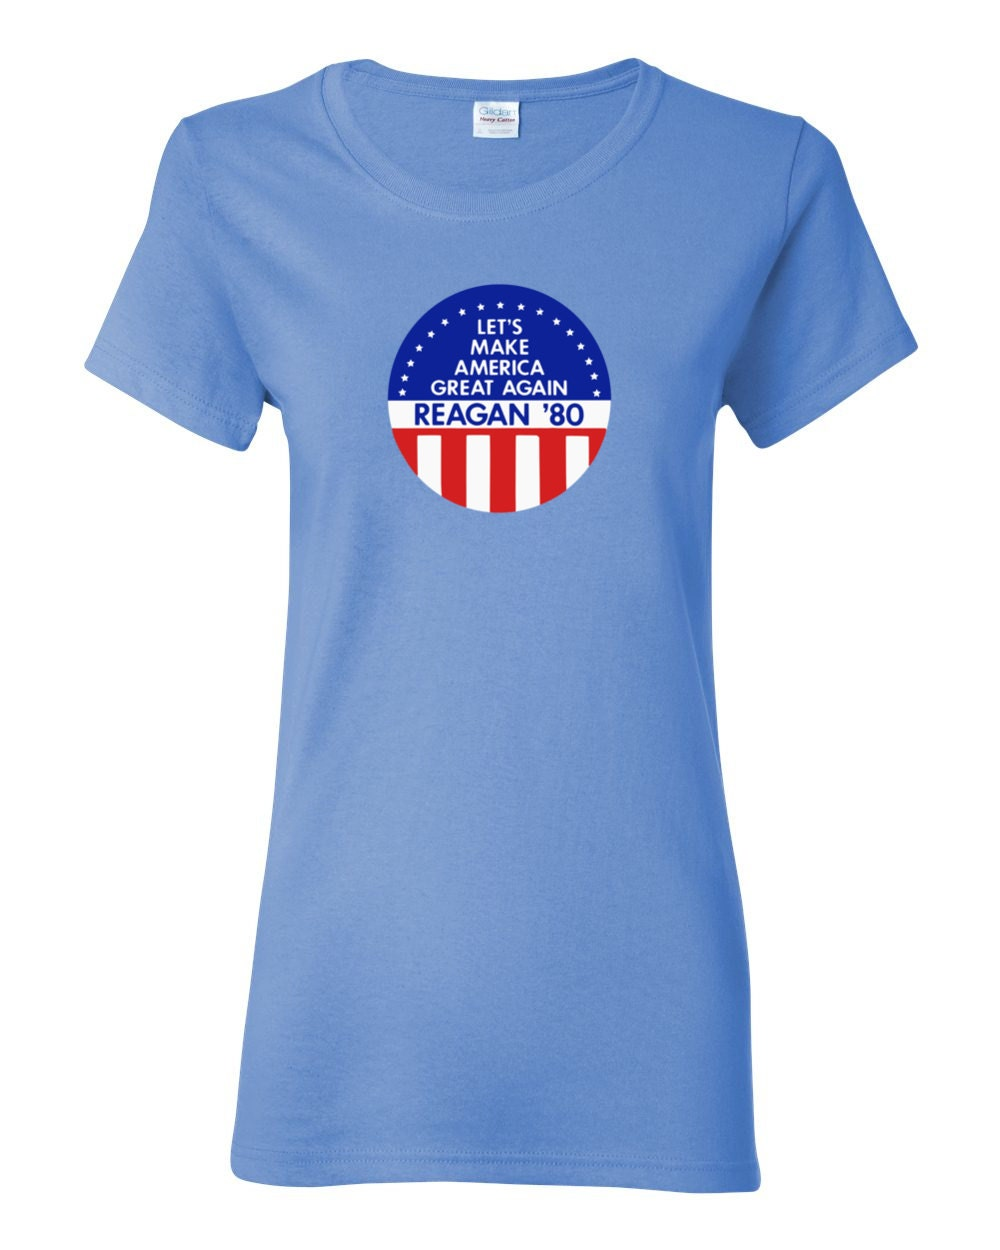 Let's Make America Great Again - Ronald Reagan 1980 Political Campaign Button Womens T-shirt